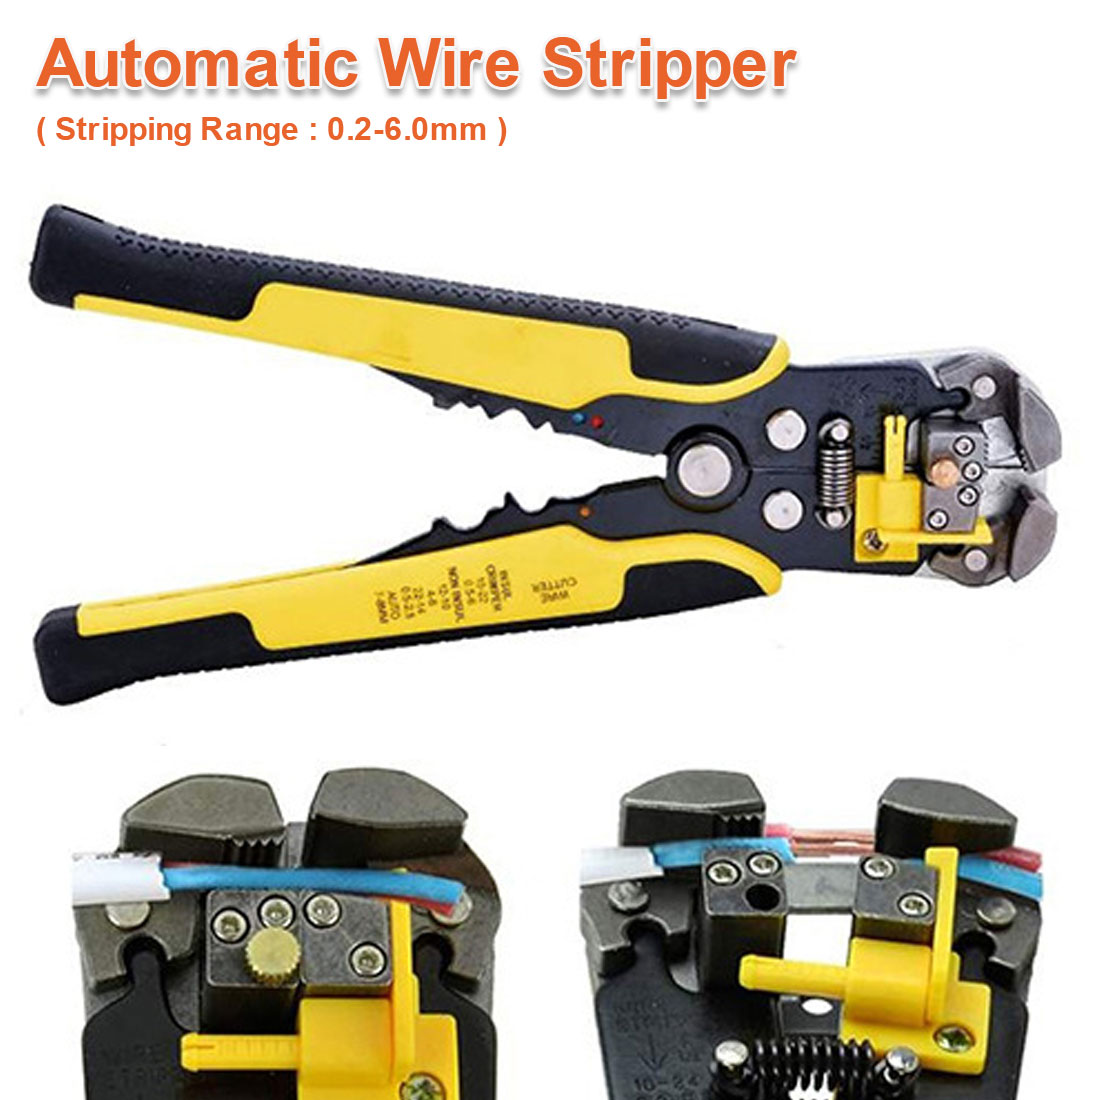 Hand Tools 0.2-6.0mm Automatic Wire Striper Cutter Stripper Crimper Pliers Crimping Terminal Cutting And Stripping Wire